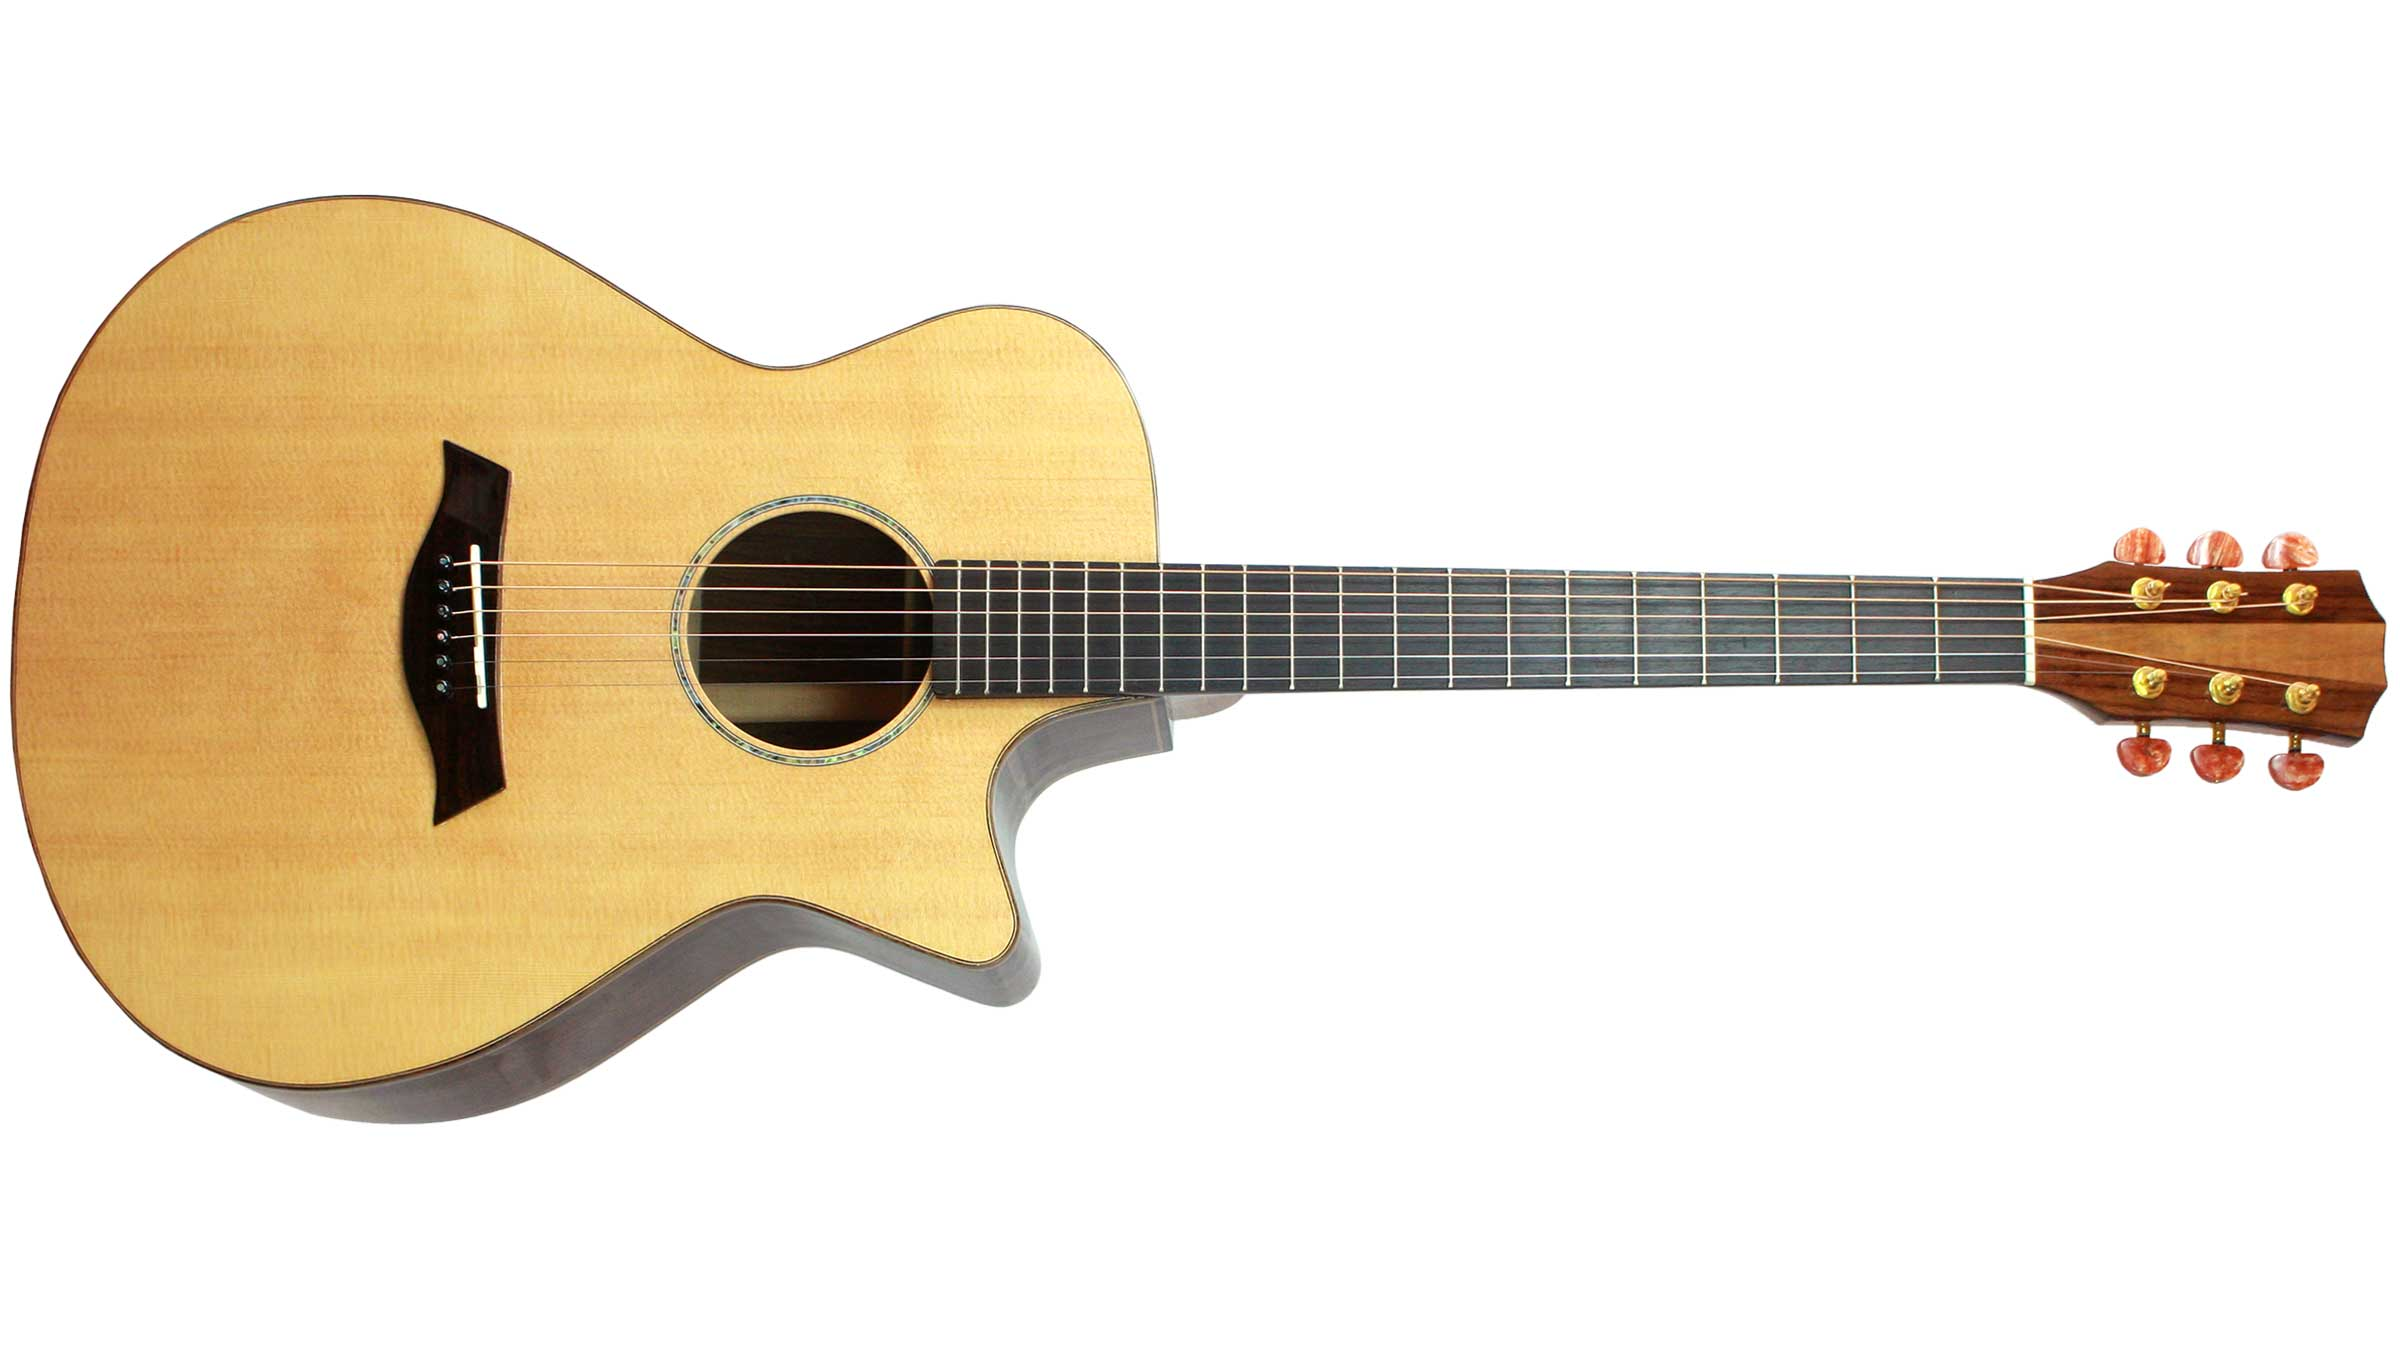 guitar-acoustic-CA-60-top